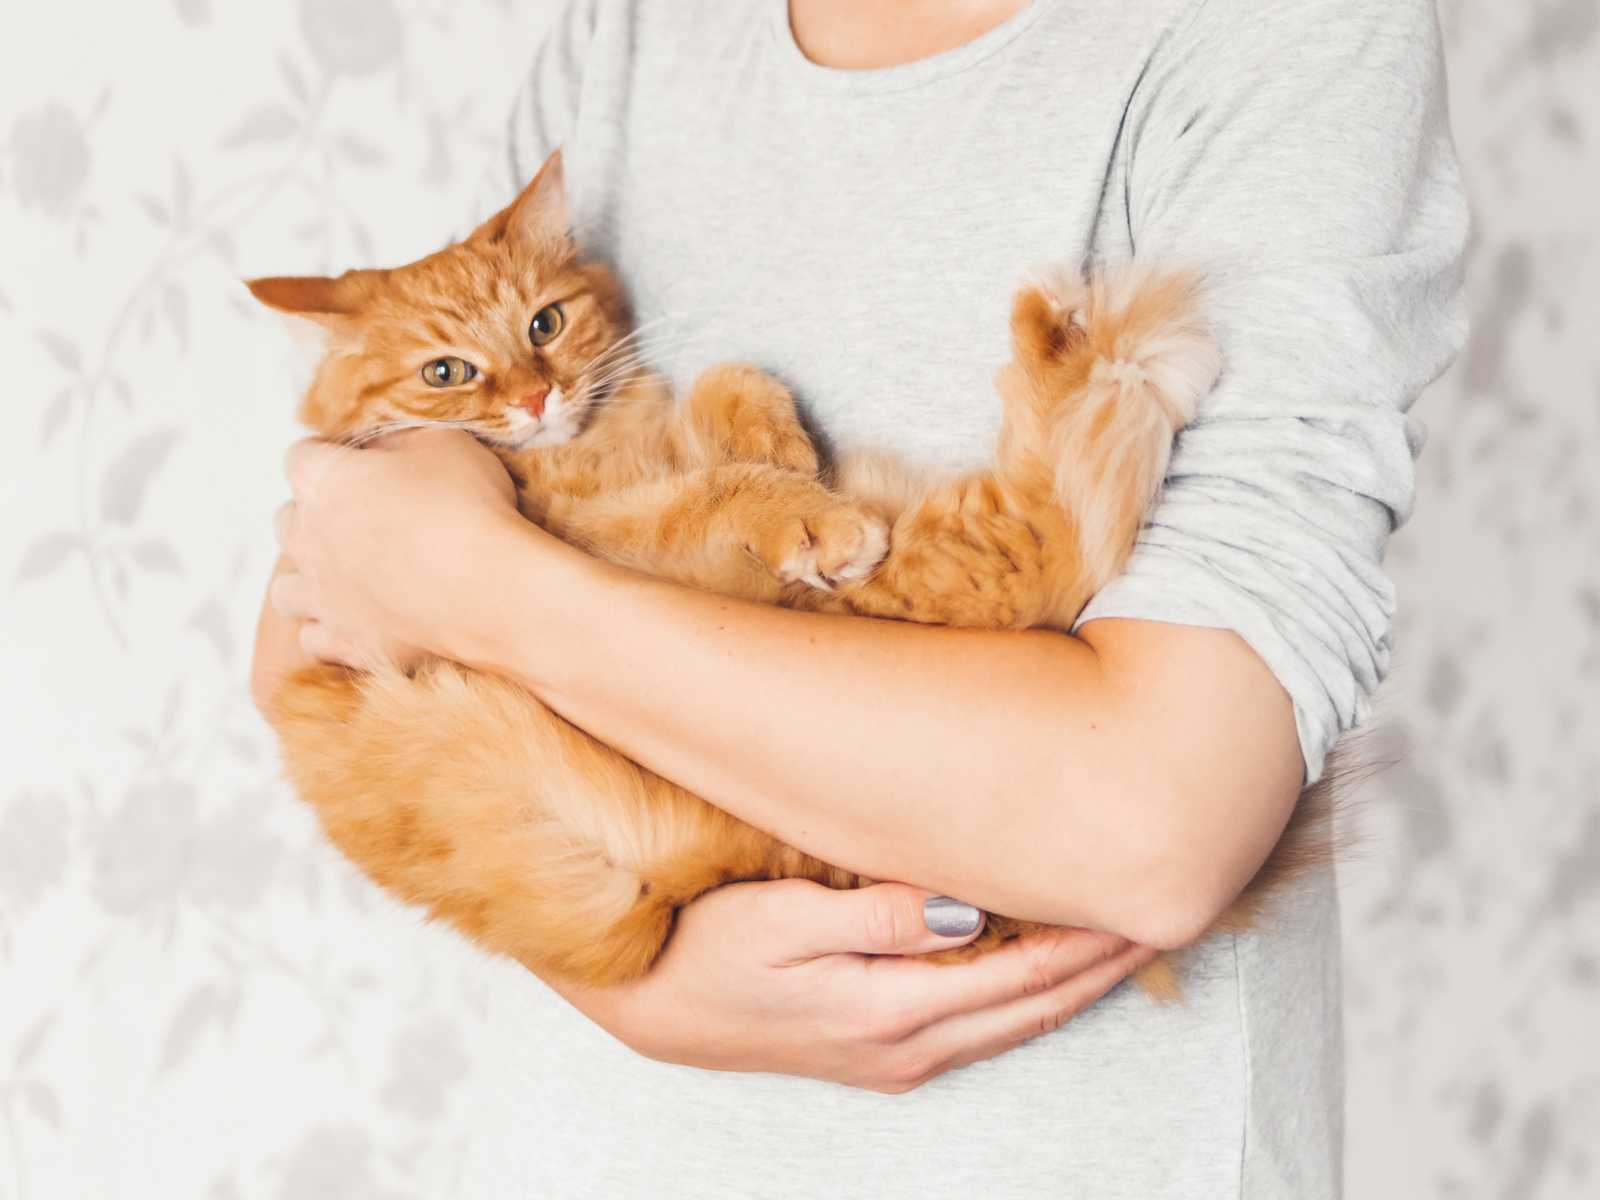 Best pets for cuddling.